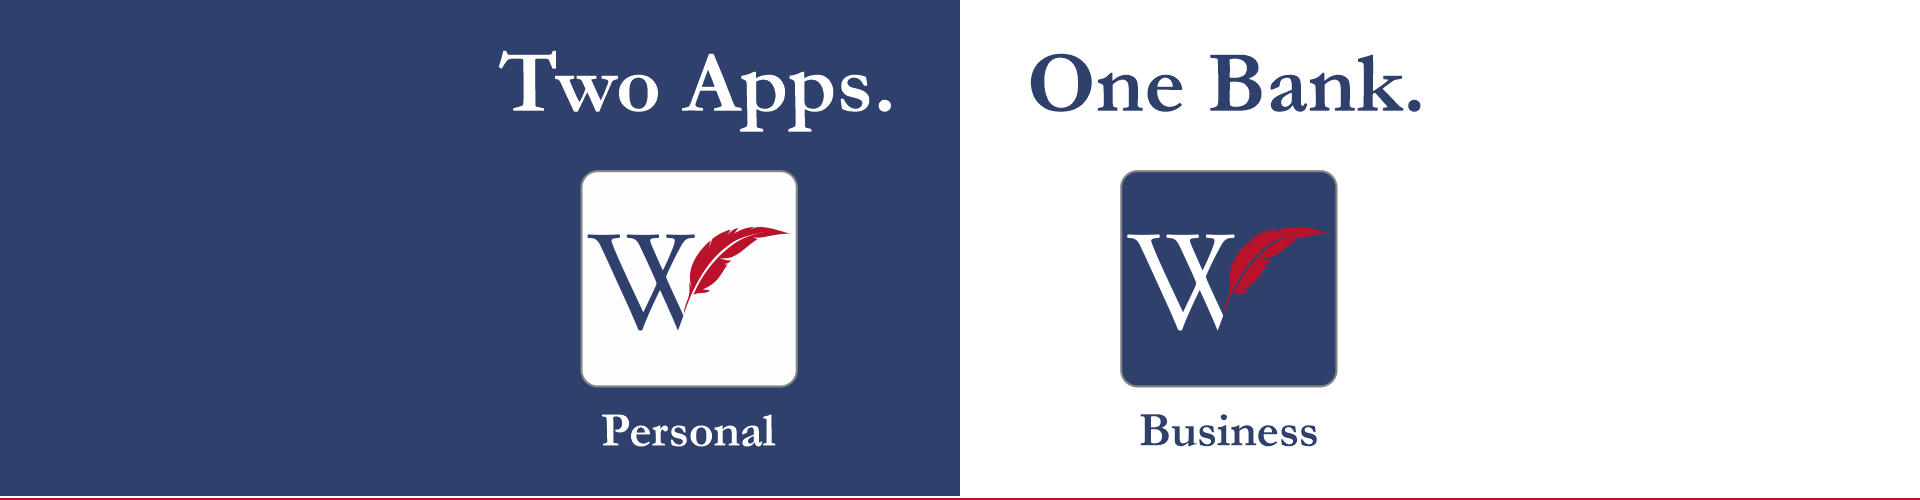 Personal & Business Apps